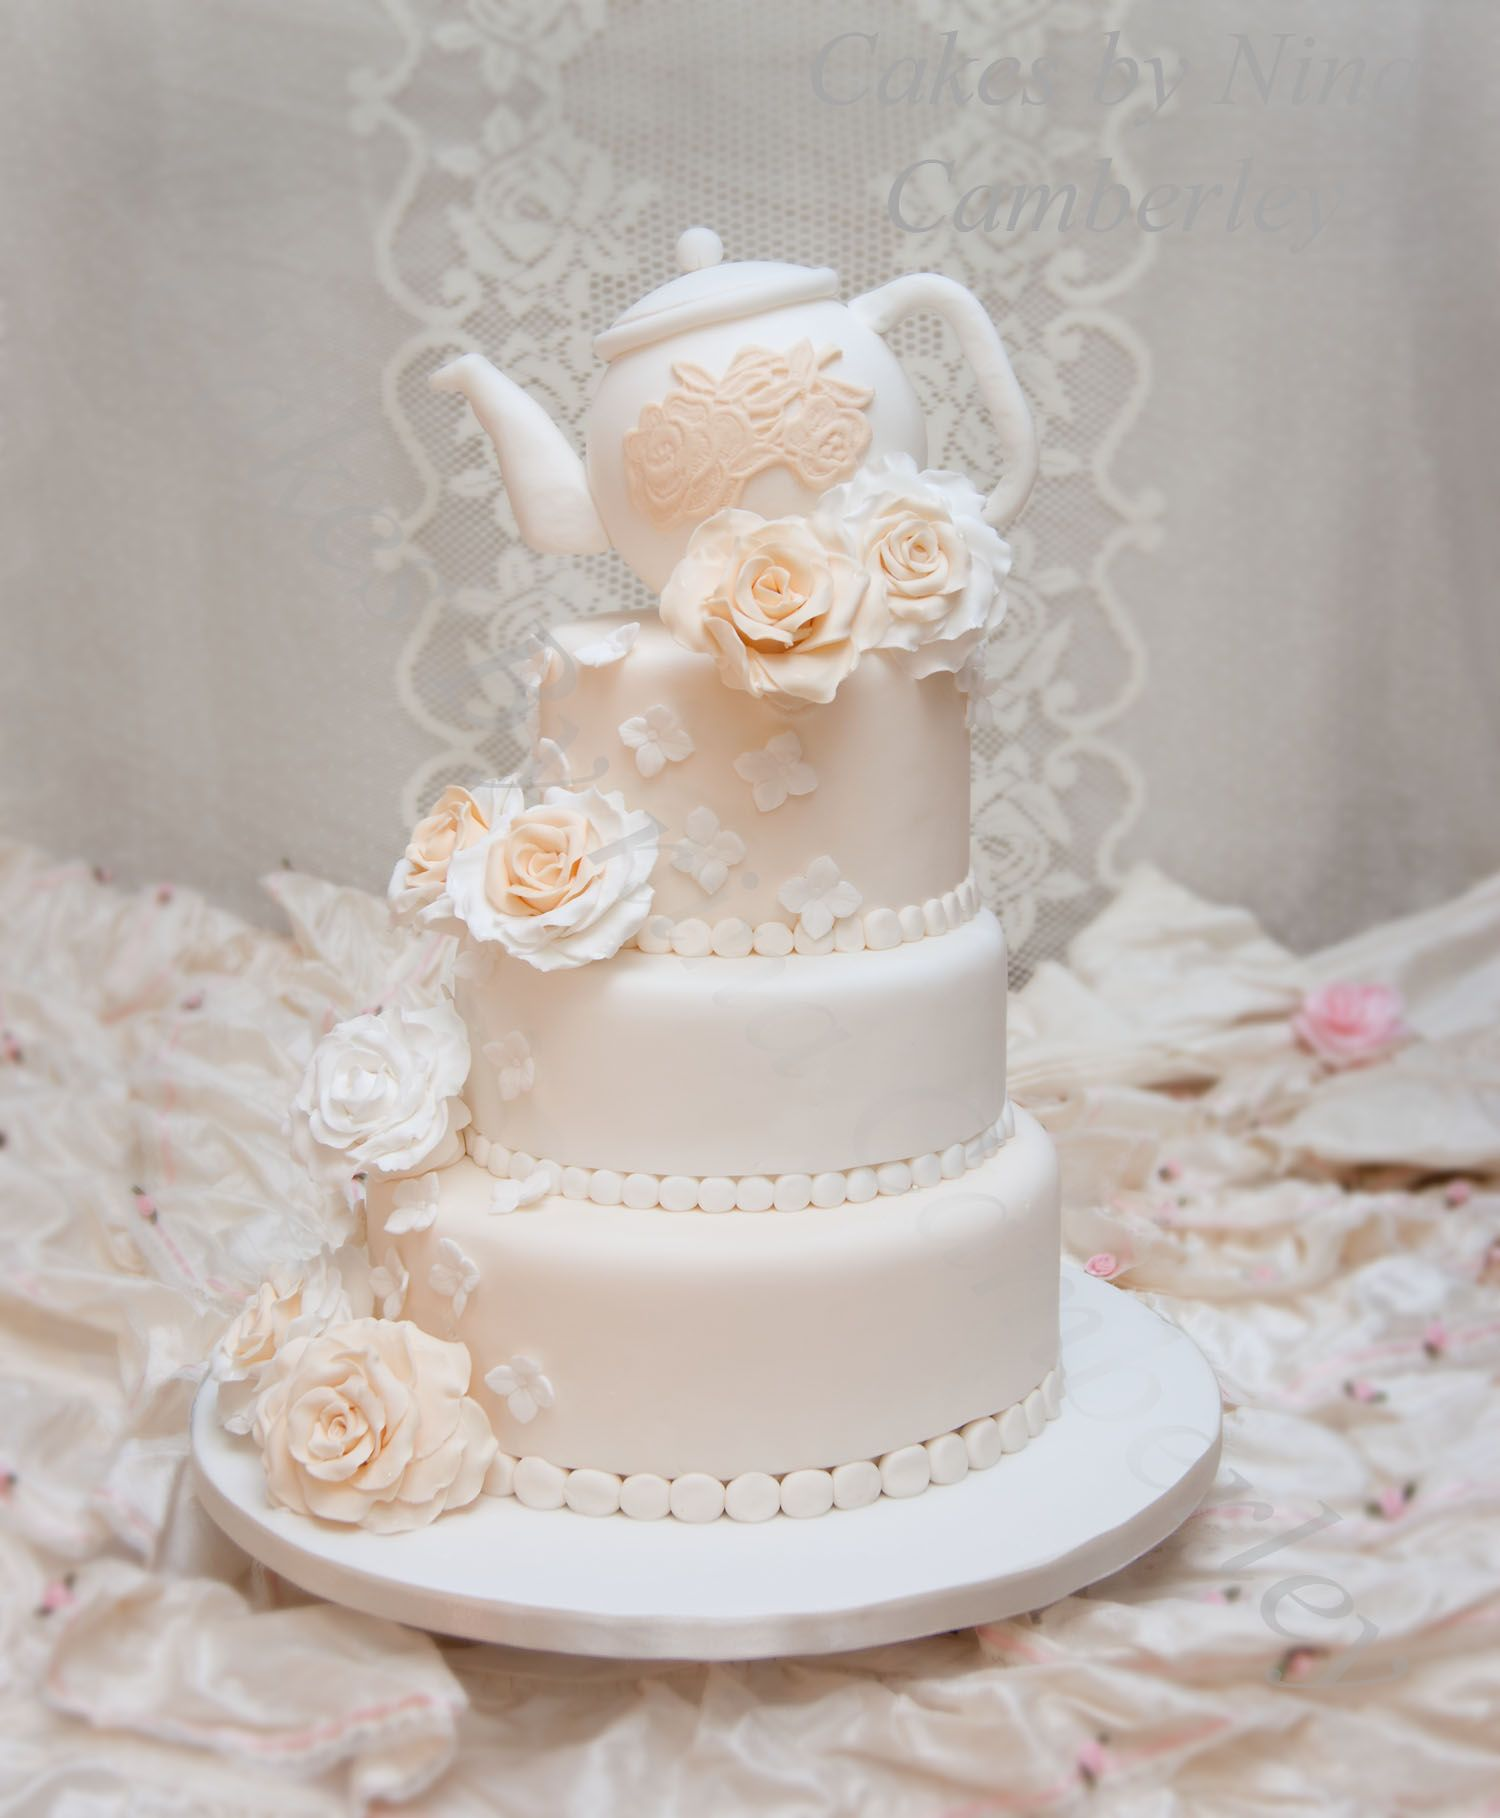 This is a new original design by cakes by nina this was originally